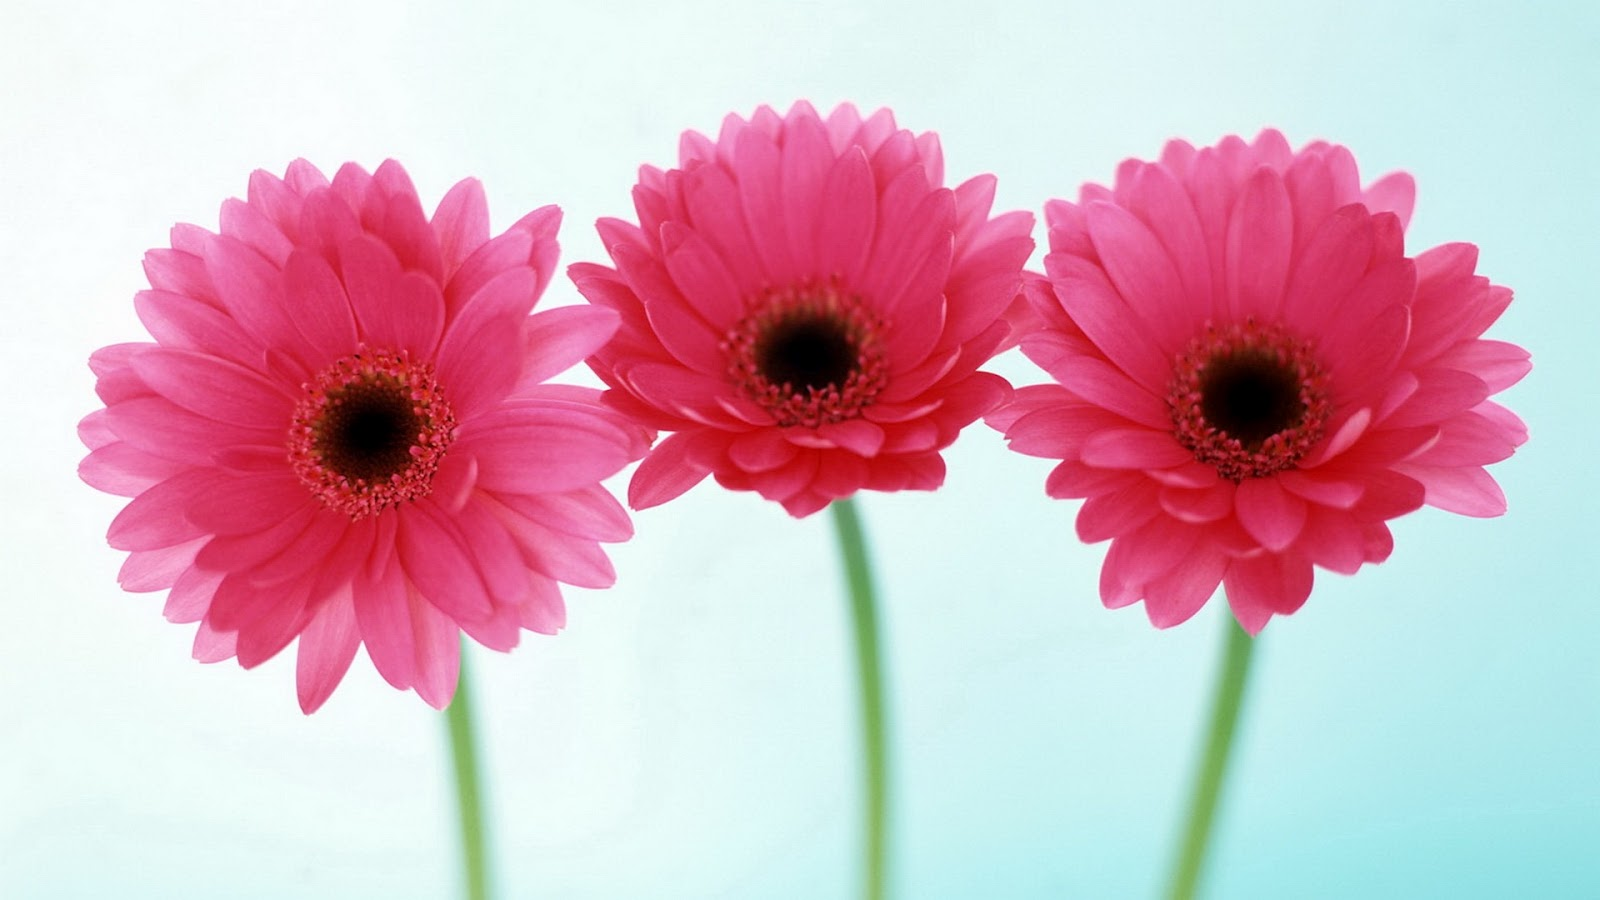 Flowers For Flower Lovers HD Wallpapers 1600x900